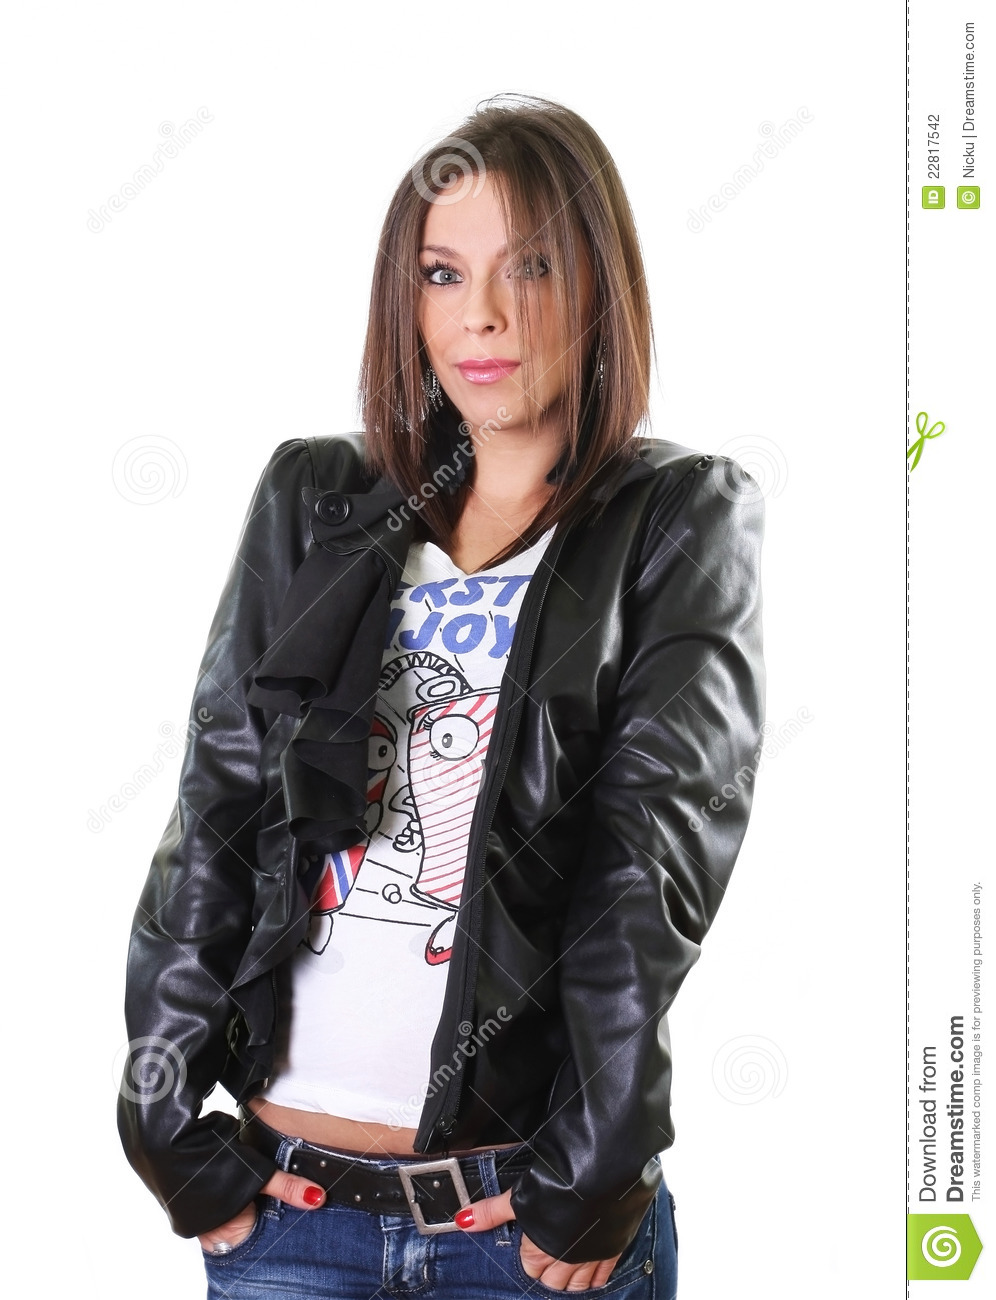 Girls in leather jackets